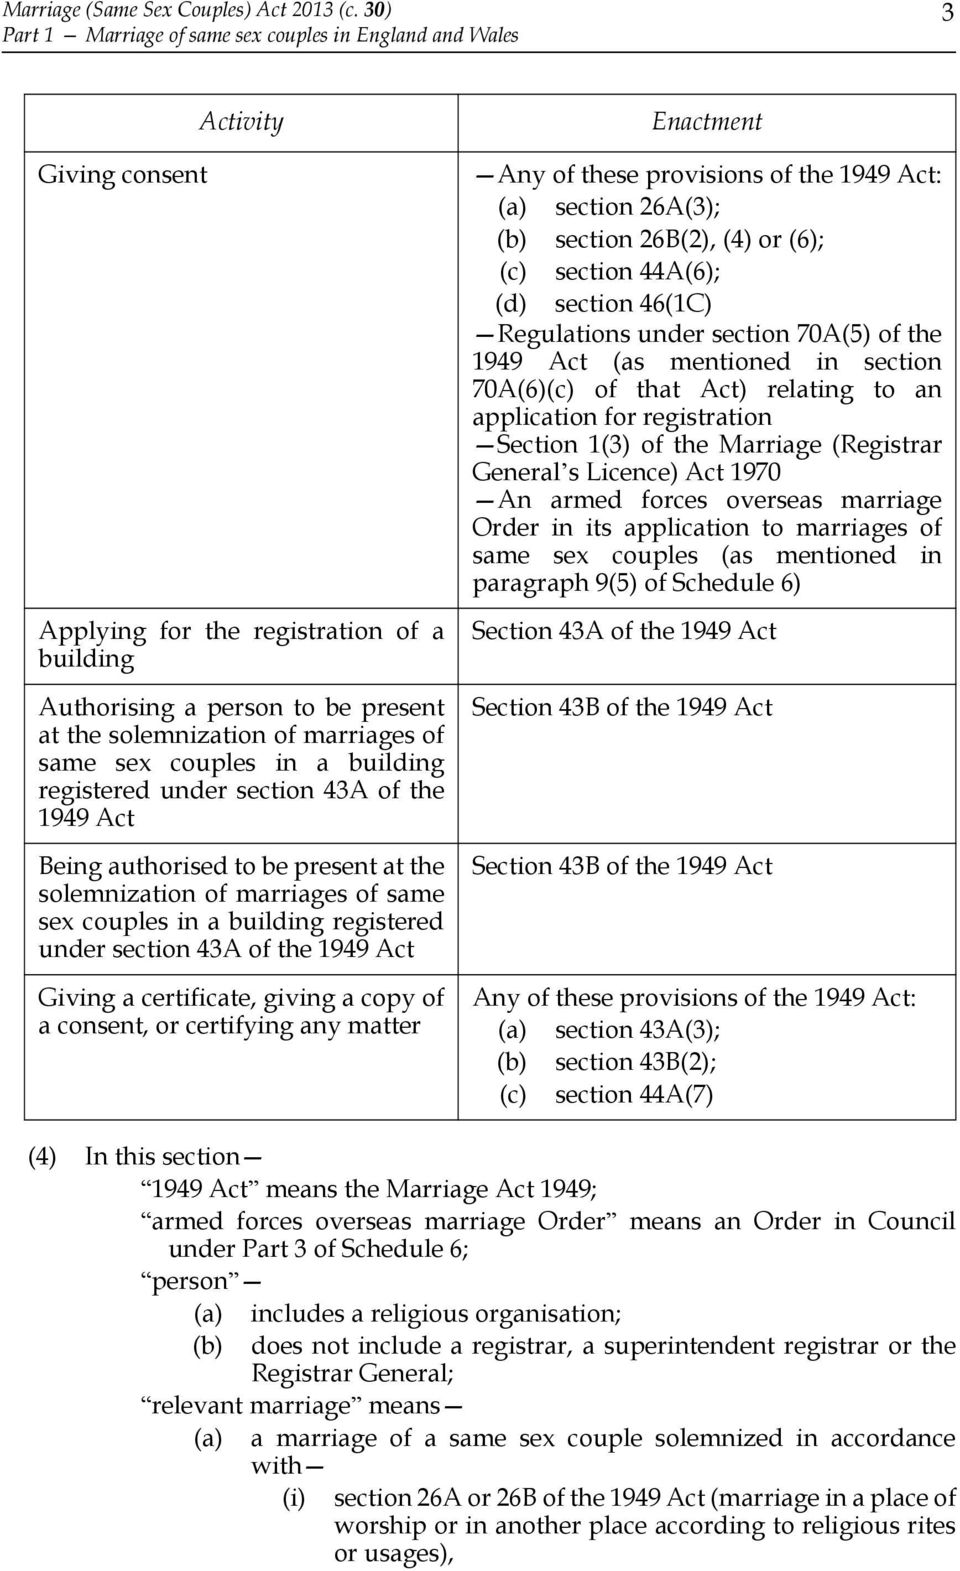 of same sex couples in a building registered under section 43A of the 1949 Act Being authorised to be present at the solemnization of marriages of same sex couples in a building registered under